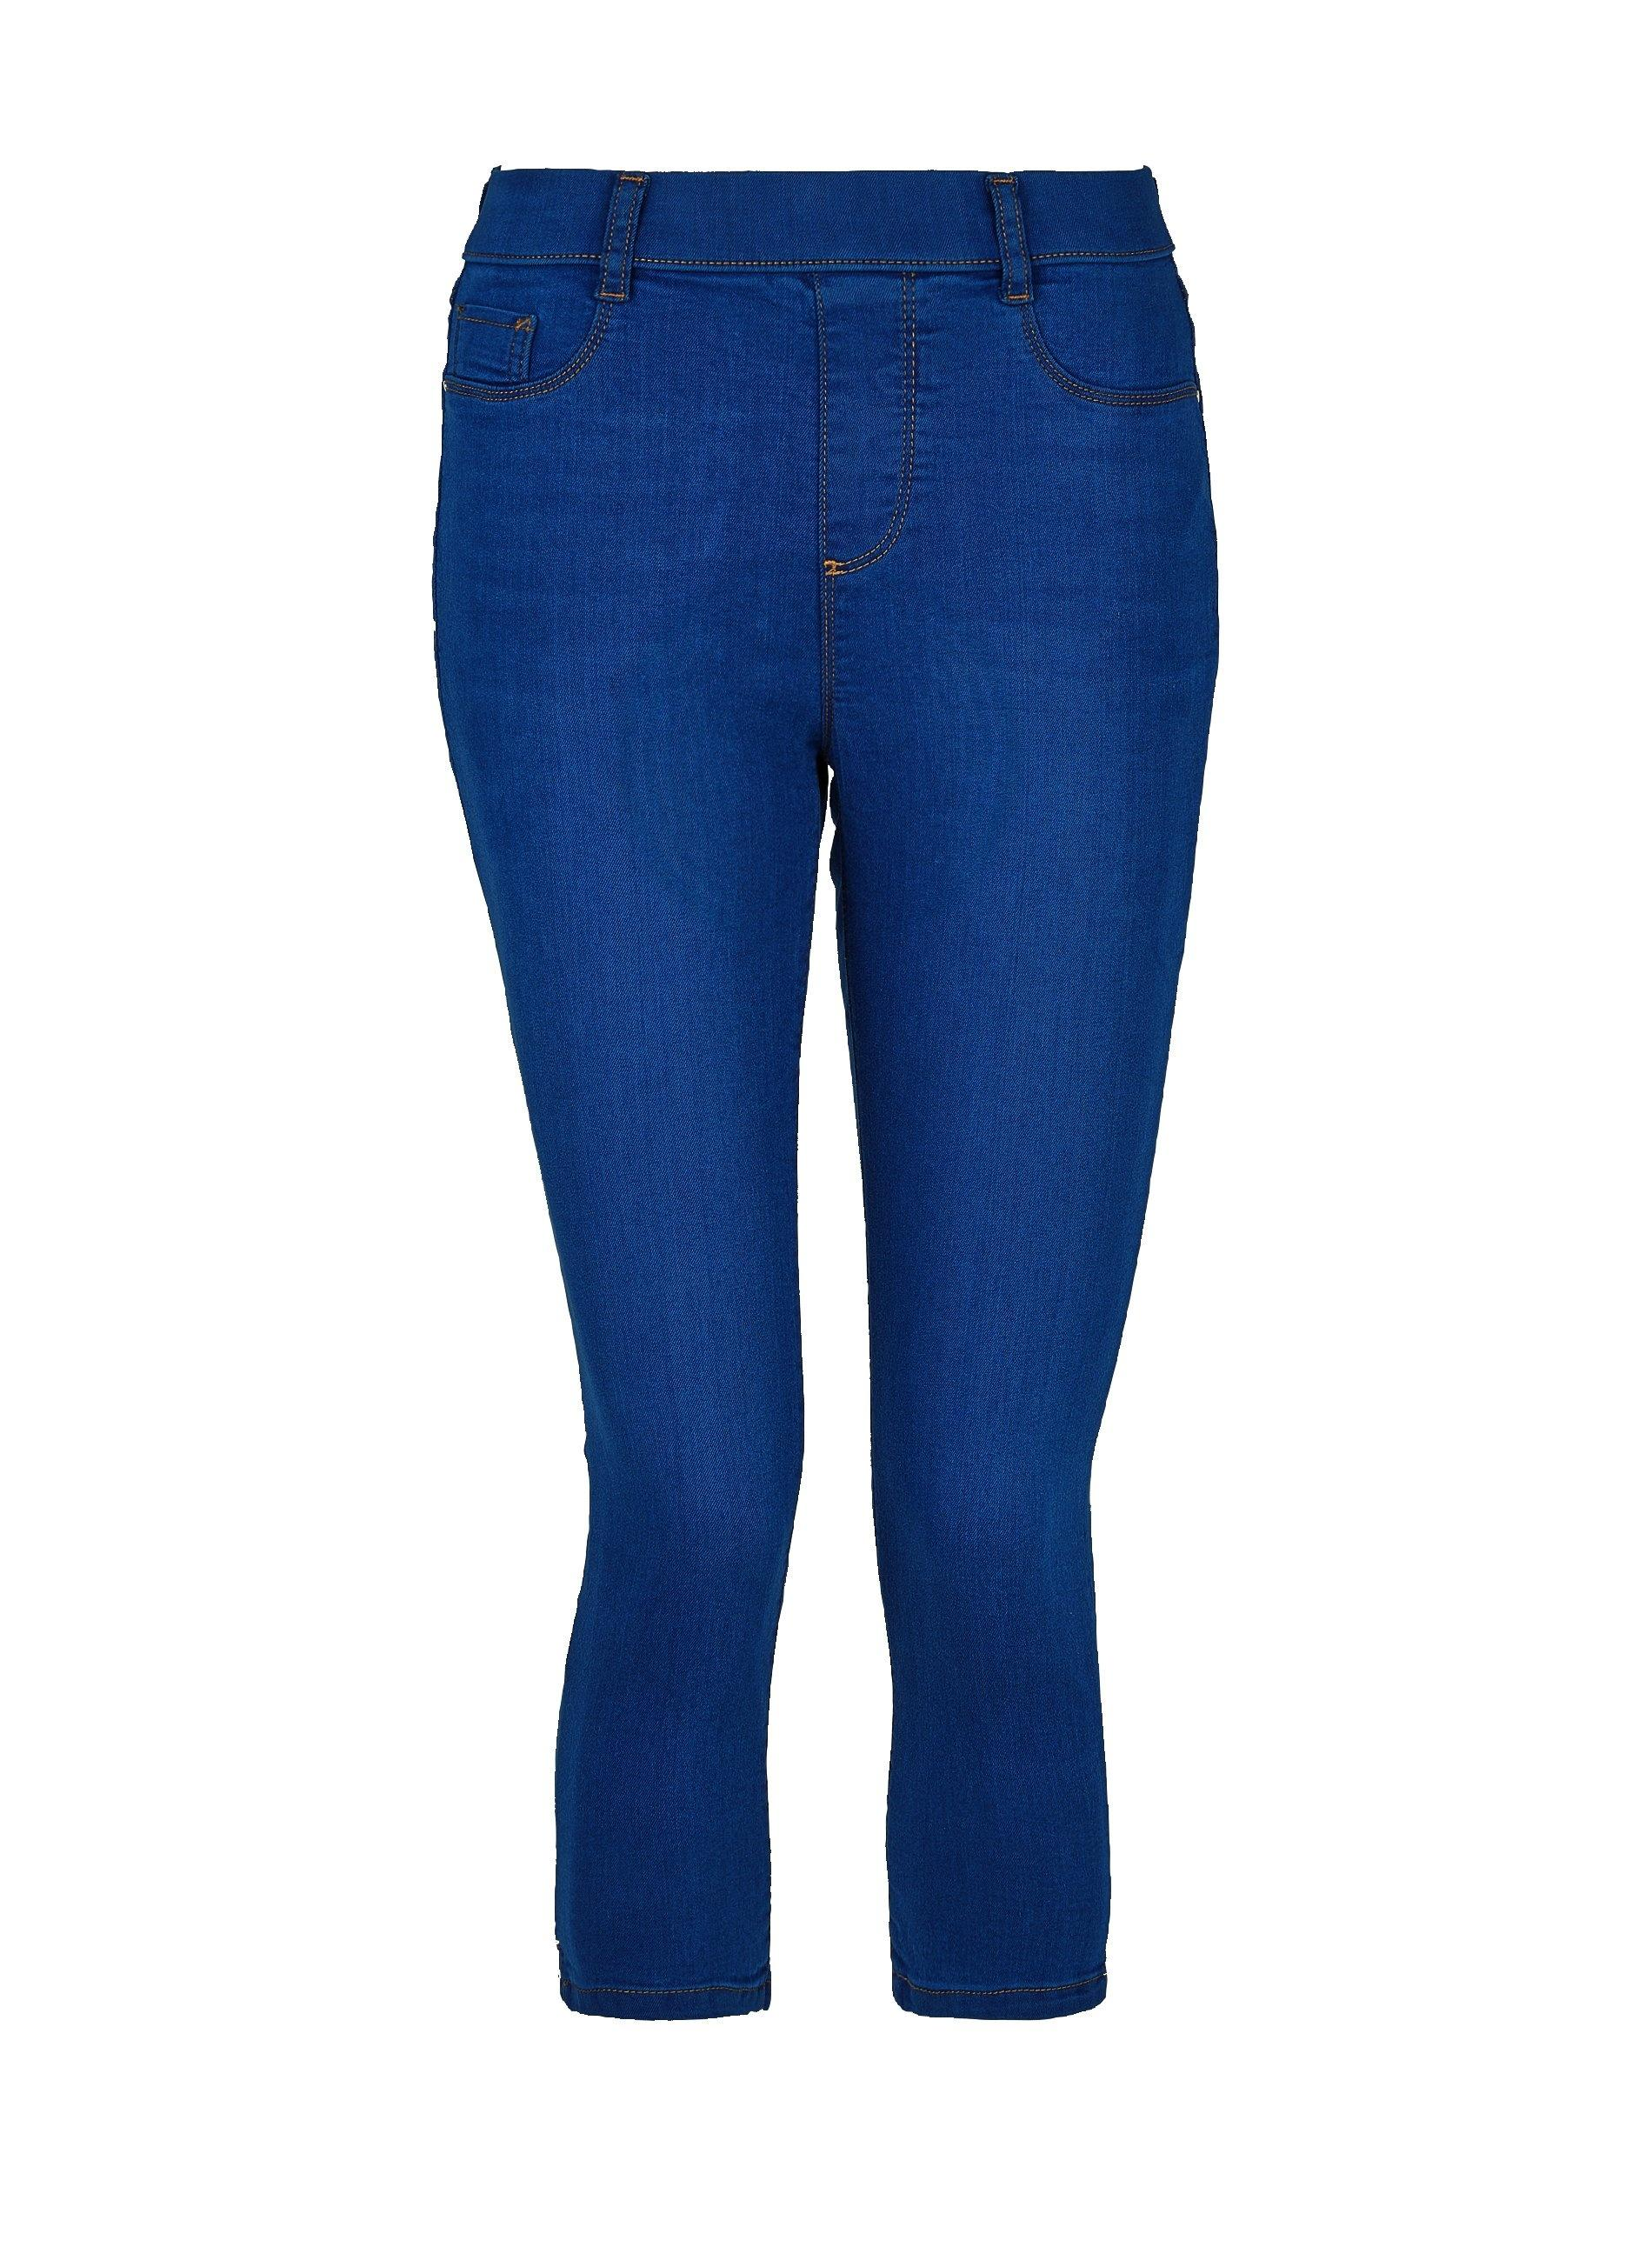 f4aa0d10a35 Lyst - Dorothy Perkins Bright Blue Eden Super Soft Cropped Jeggings ...